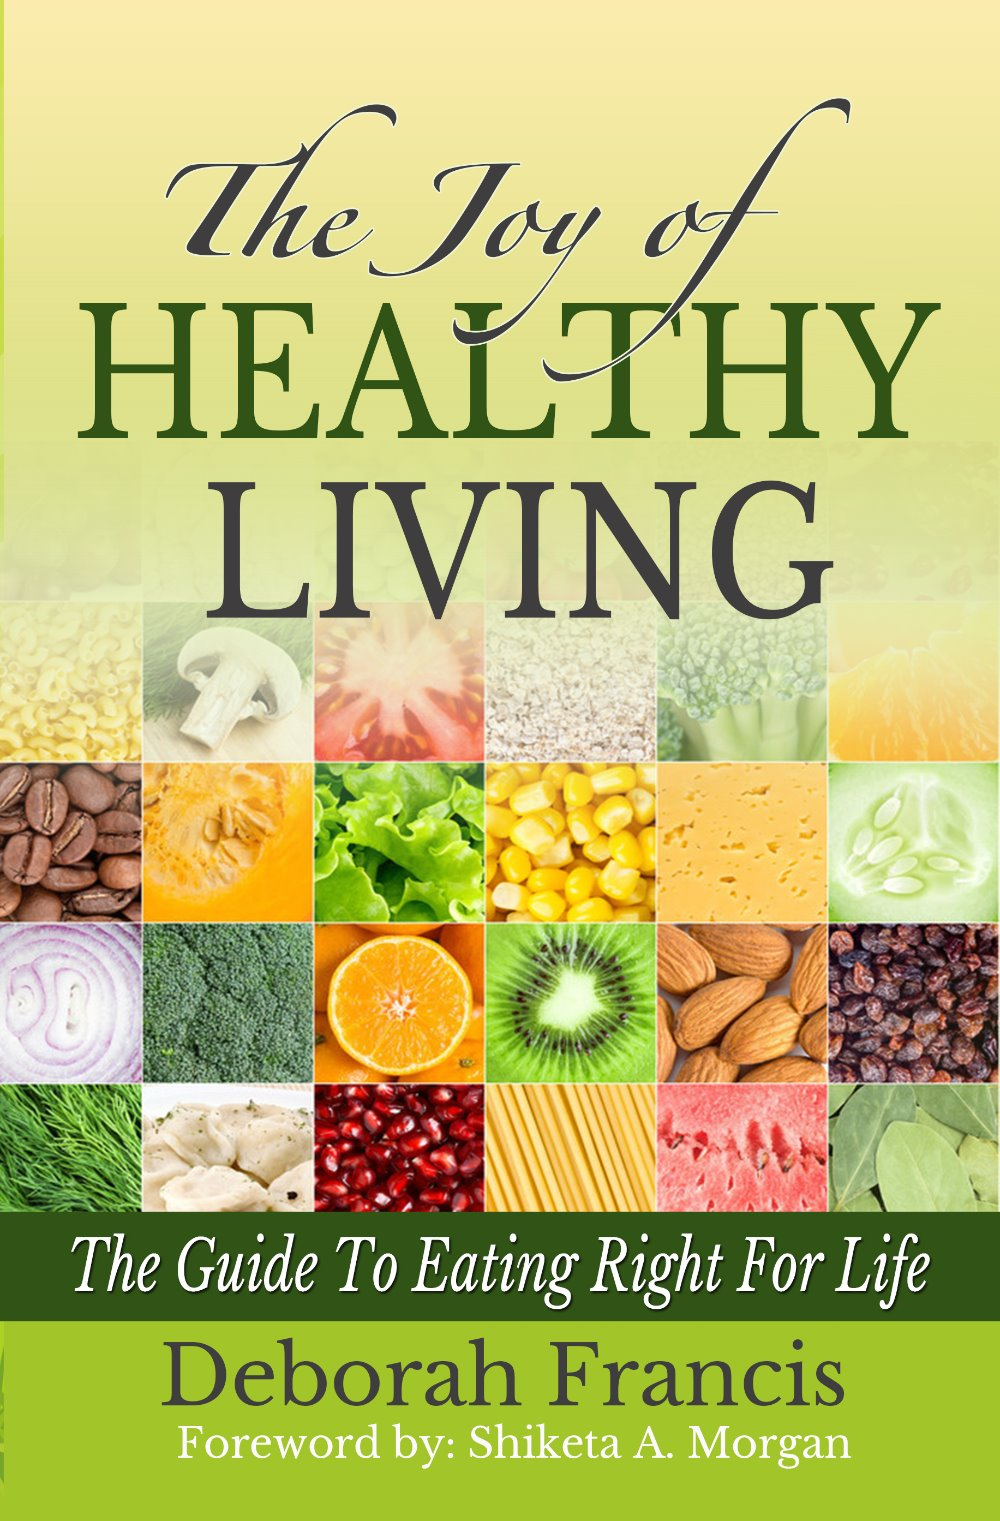 The Joy of Healthy Living Volume II